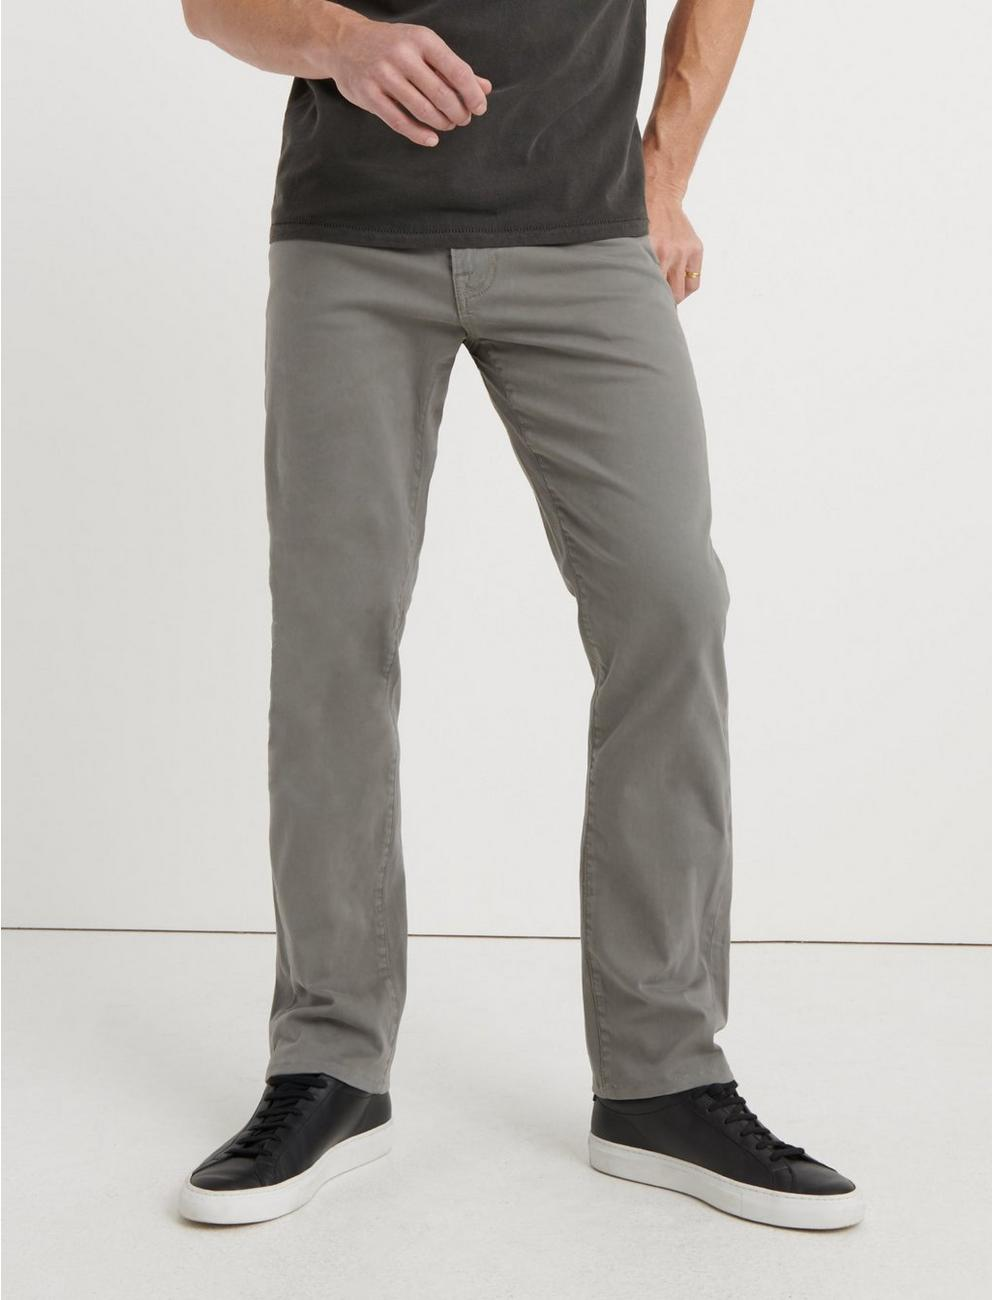 410 ATHLETIC SLIM JEAN, SEDONA SAGE